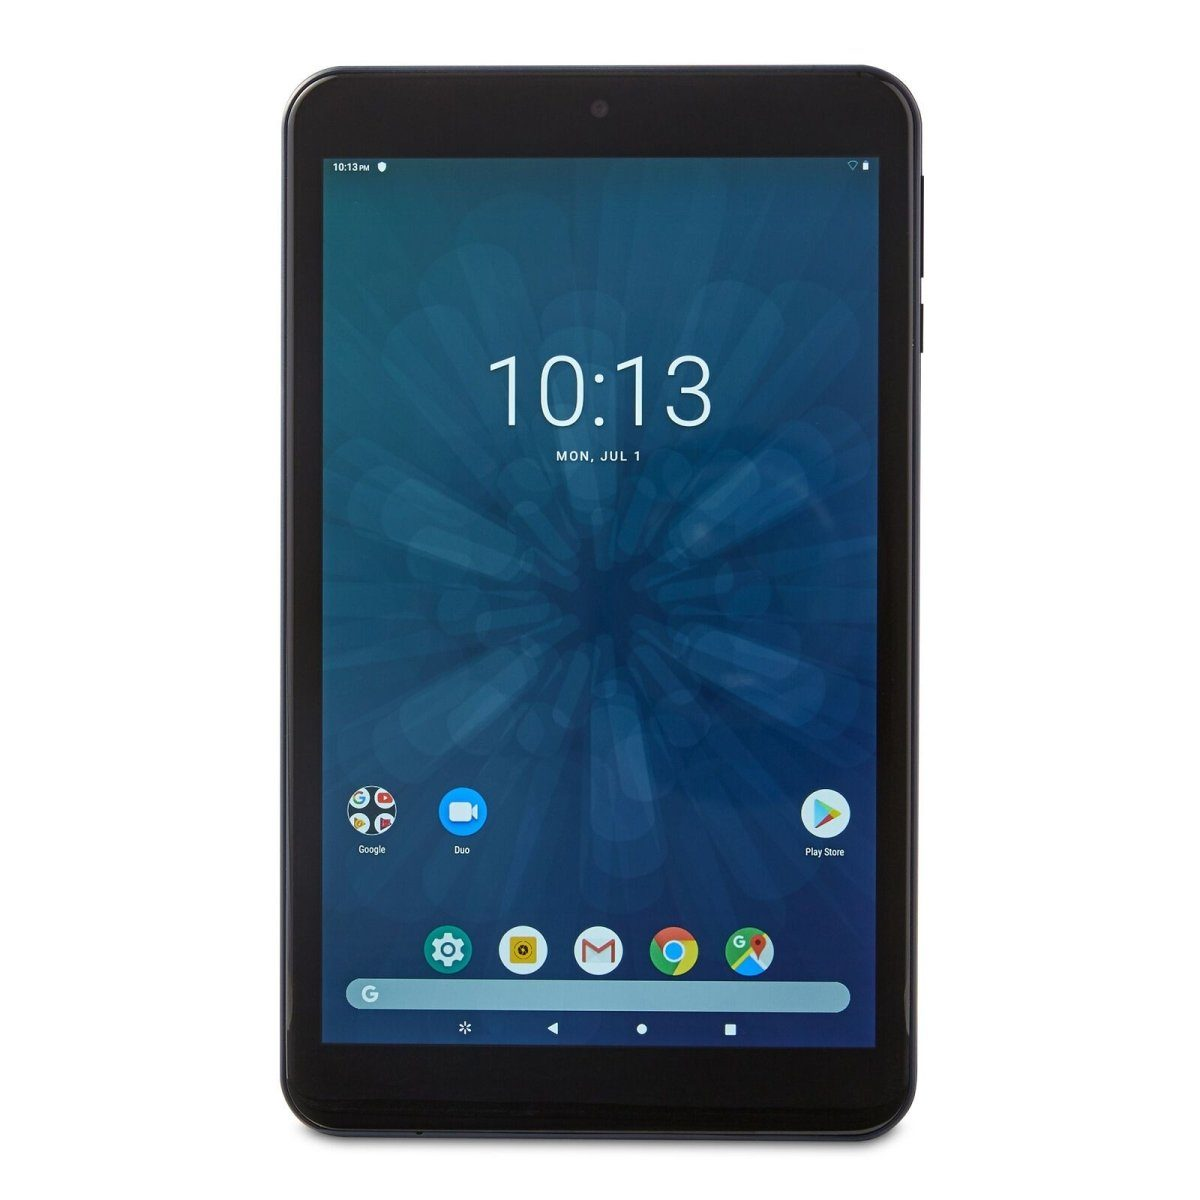 "ONN. 8"" Android Tablet - Fix Or Cell Now Device Shop"